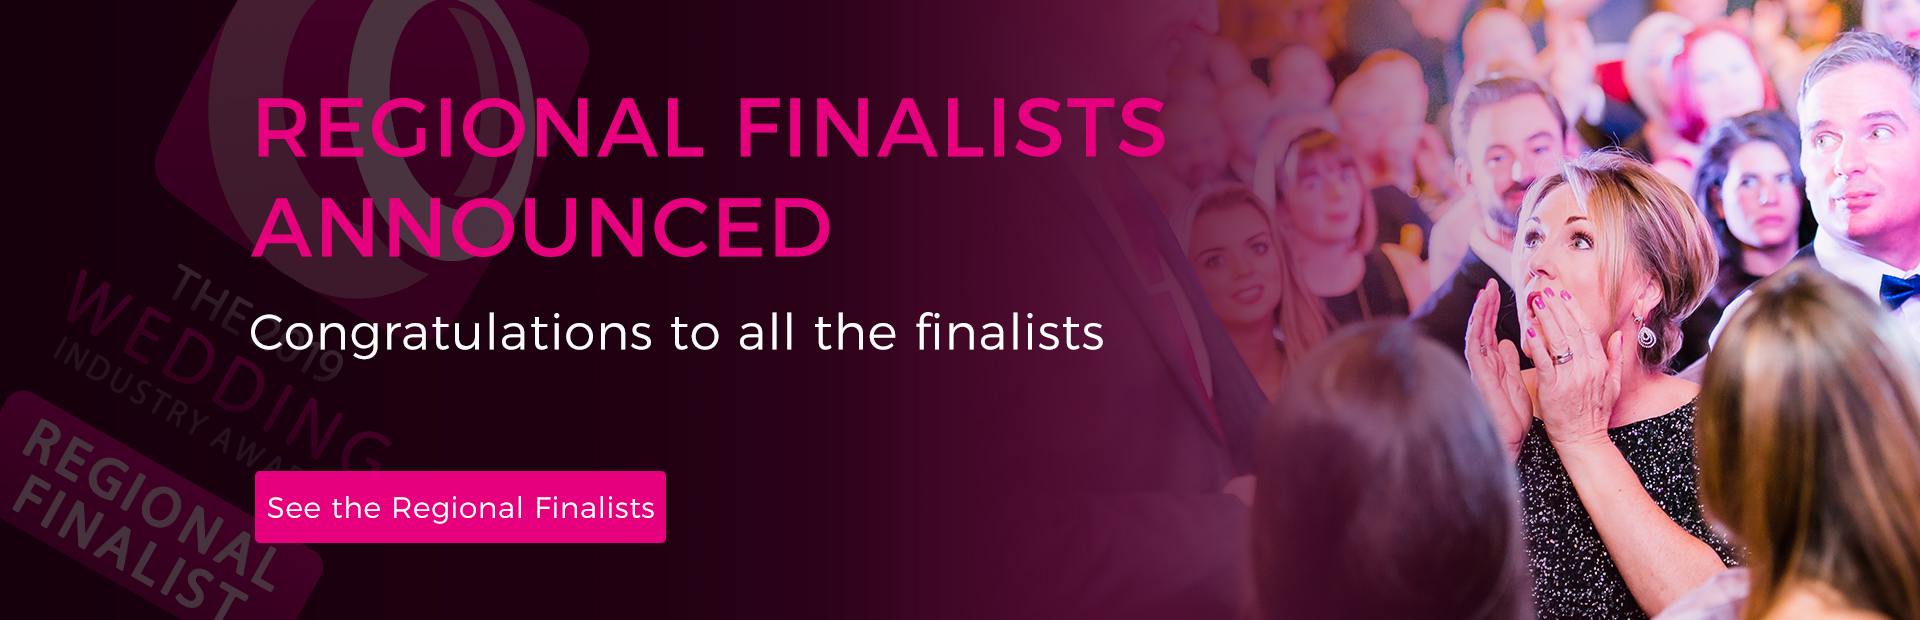 REGIONAL FINALISTS ANNOUNCED